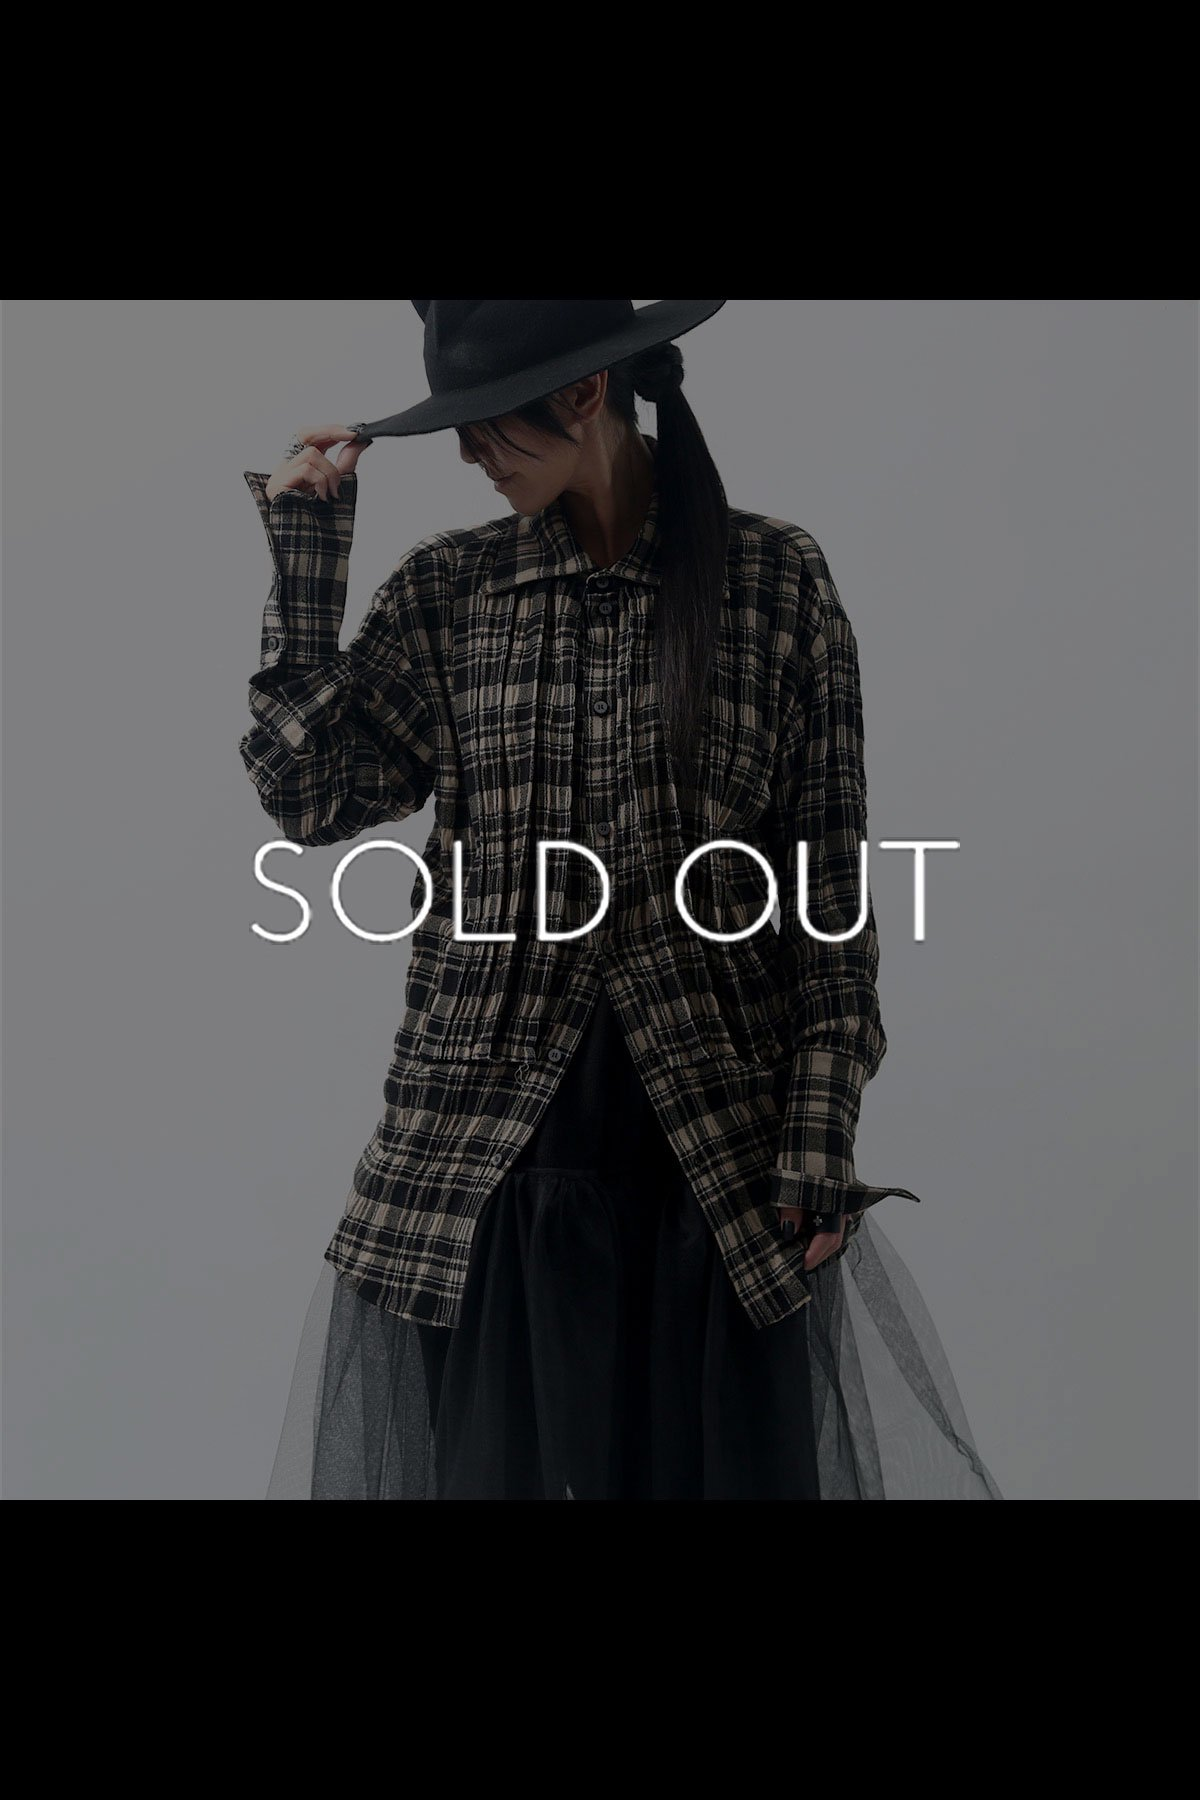 <img class='new_mark_img1' src='https://img.shop-pro.jp/img/new/icons8.gif' style='border:none;display:inline;margin:0px;padding:0px;width:auto;' />CHECKERED SHIRT C09_BEIGE BLACK